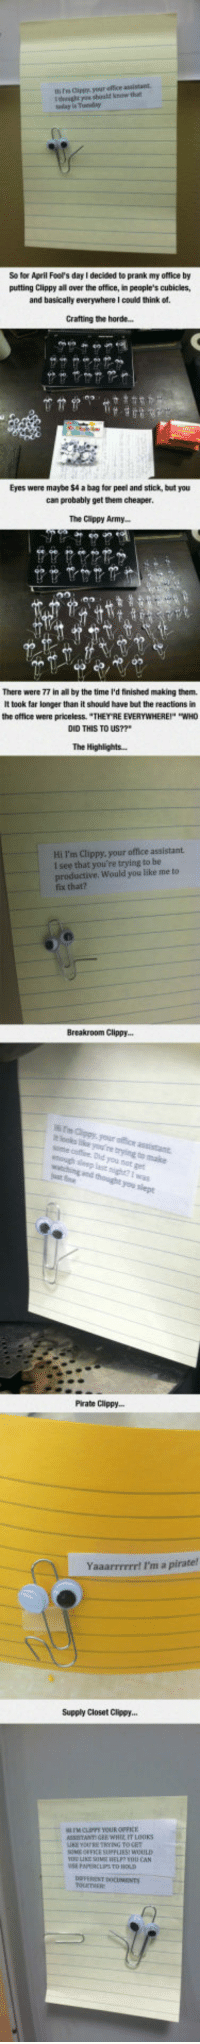 "Prank, The Office, and Army: ti es Cippy your office assistant  tghe shoald krow that  taday is Tunday  So for April Fool's day I decided to prank my office by  putting Clippy all aver the office, in people's cubicles,  and basically everywhere I could think of  Cratting the horde...  Eyes were maybe $4 a bag for peel and stick, but you  can probably get them cheaper  The Clippy Army  0p  There were 77 in all by the time I'd finished making them  It took far longer than it should have but the reactions in  the office were priceless. ""THEY RE EVERYWHERE ""WHO  DID THIS TO US??*  The Highlights...  Hi I'm Clippy, your office assistant  l see that you're trying to be  productive. Would you like me to  fix that?  Breakroom Clippy...  Did  Pirate Clippy  Yaaarrrrrrt I'm a pirate!  Supply Closet Clippy.  E SUPPLIES  TO HOLD  0 <p>Suddenly, A Wild Clippy Appears.</p>"